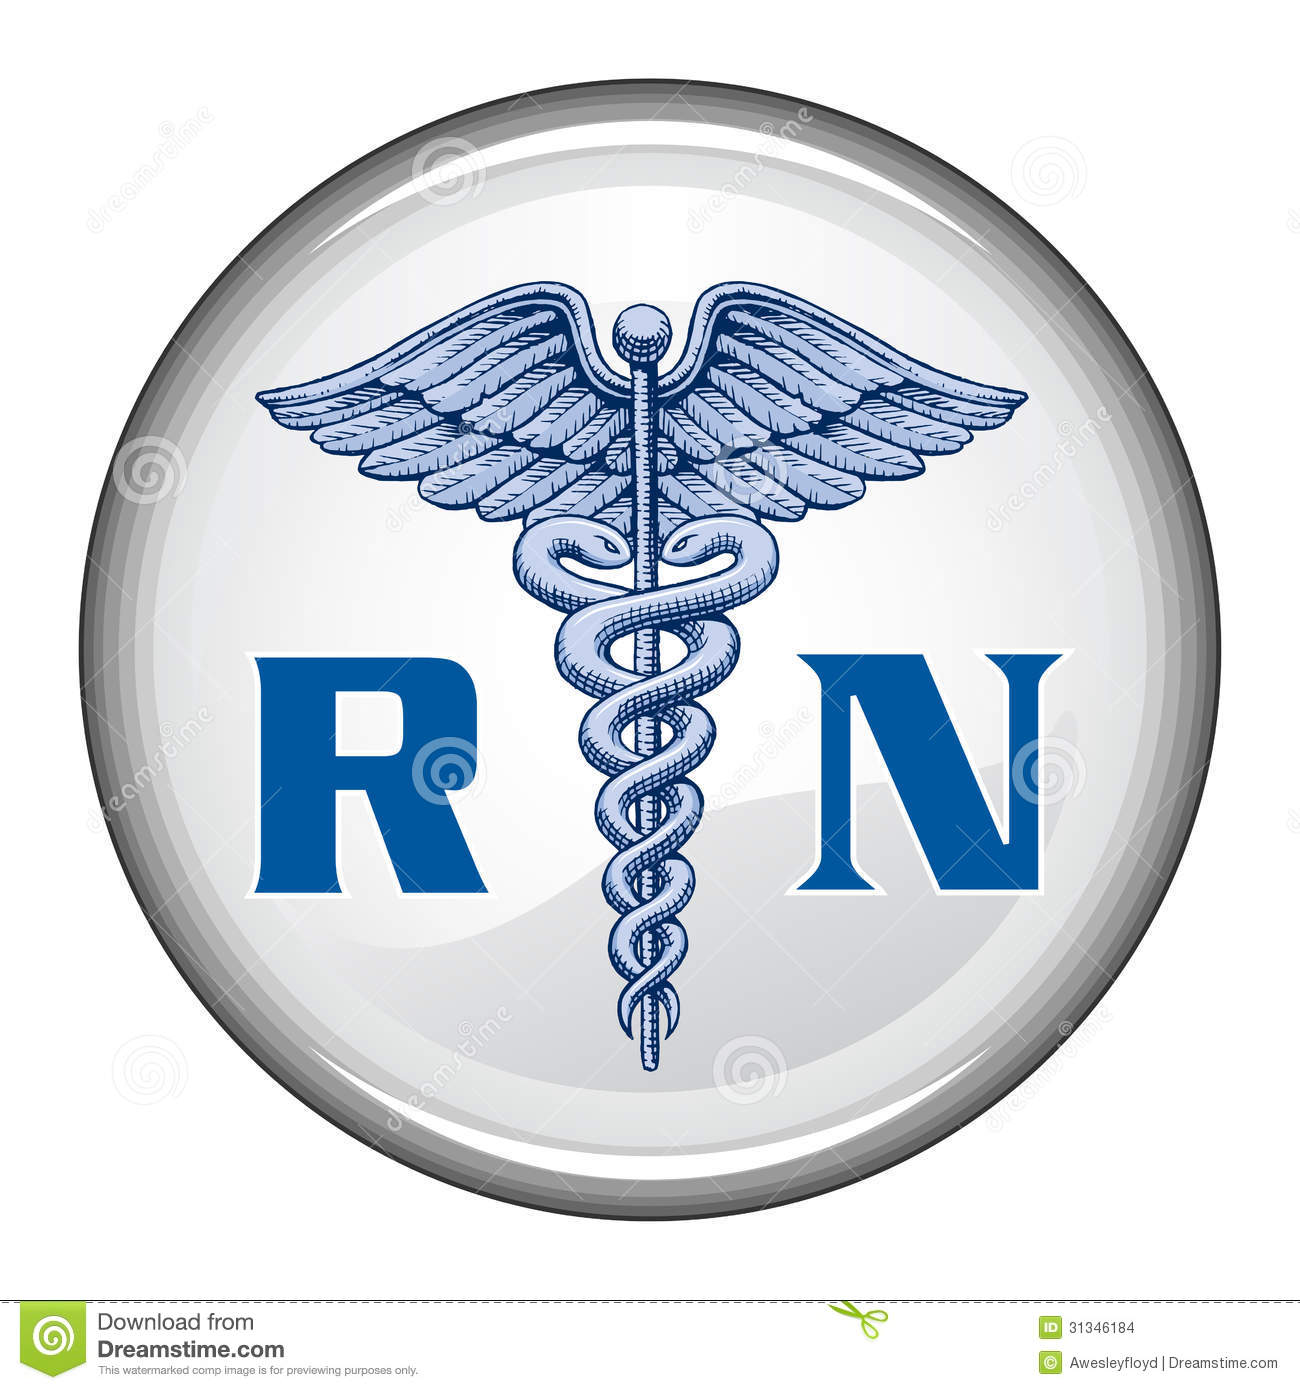 Registered Nurse Button Stock Vector Illustration Of Button 31346184